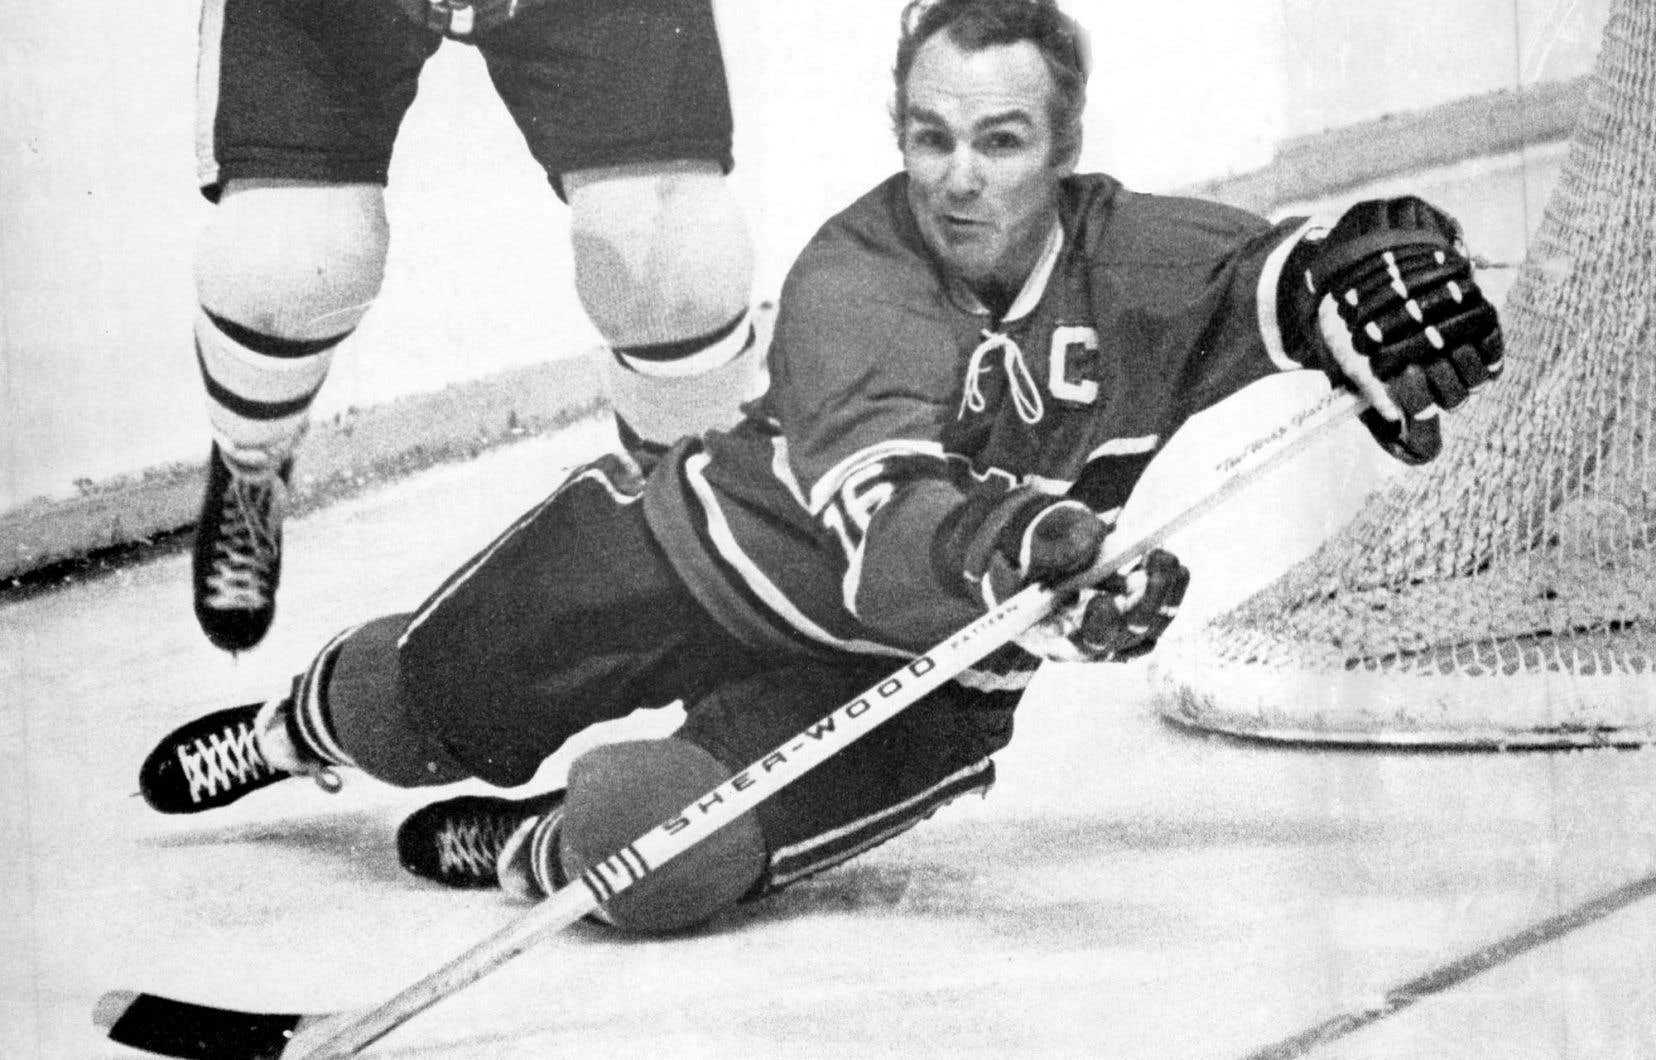 Henri Richard a été capitaine du Canadien de Montréal de 1971 à 1975. Sur la photo, on le voit en action contre les Maple Leafs de Toronto, le 15 mars 1972.